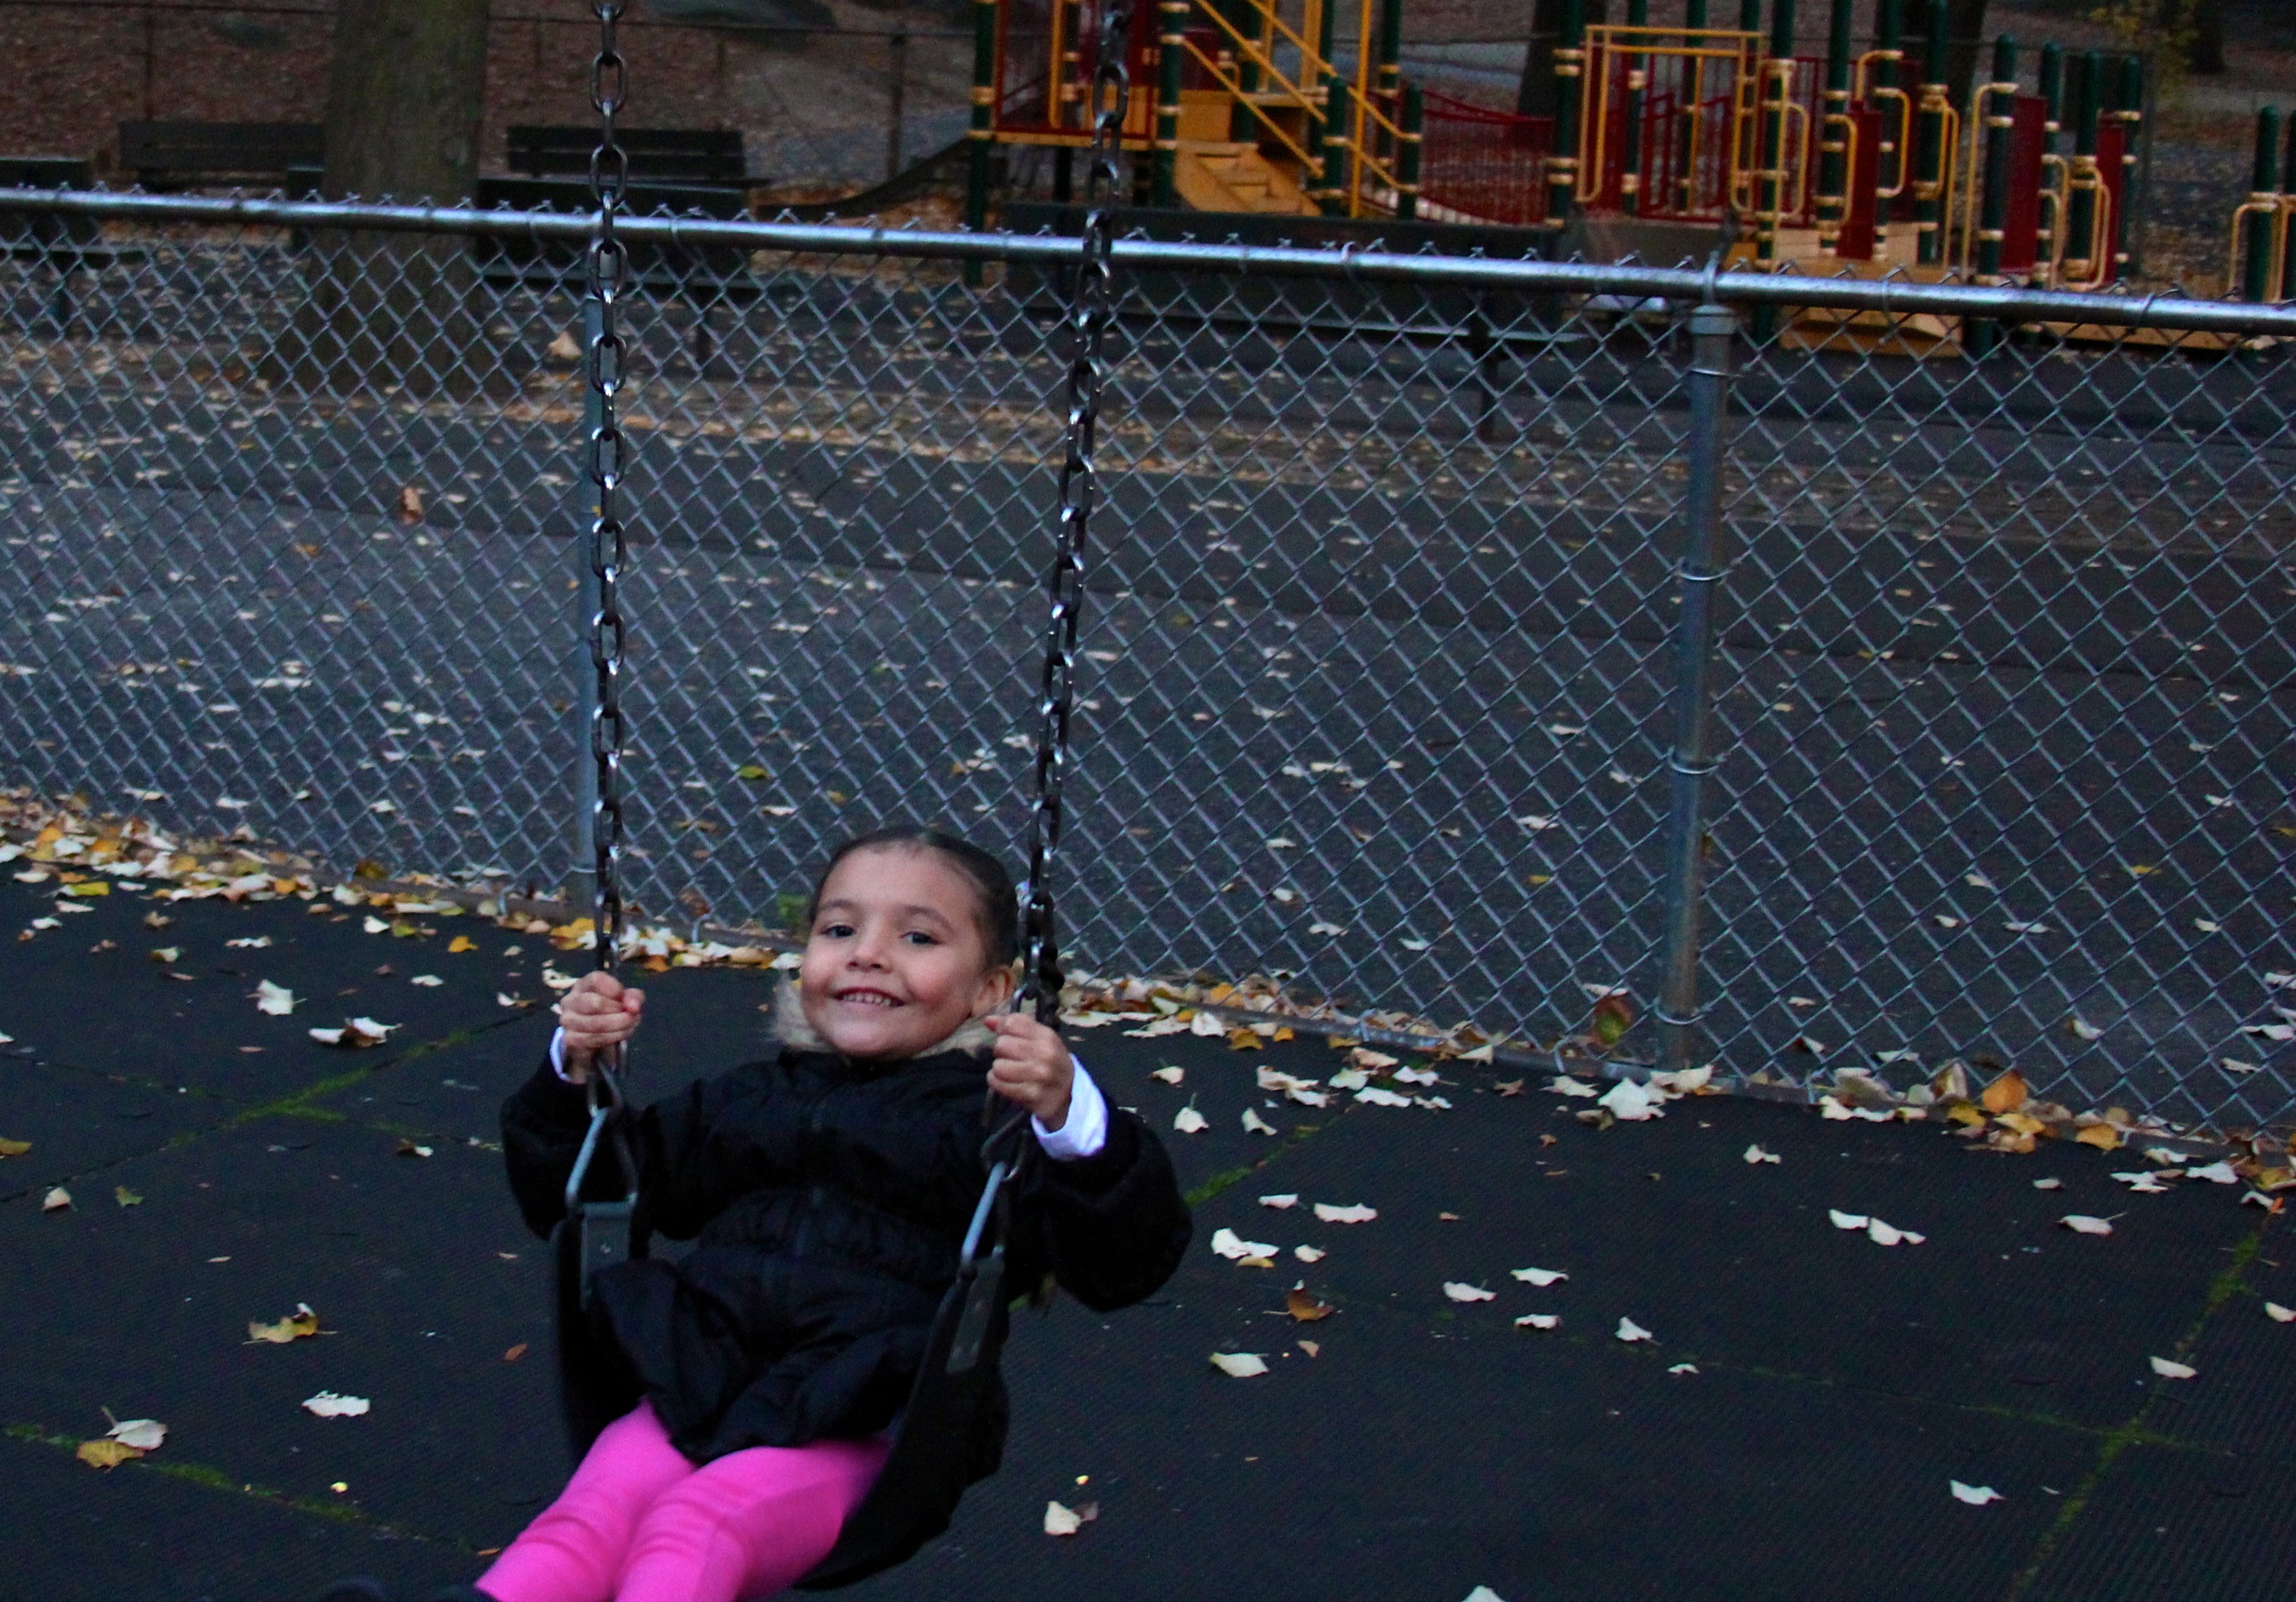 Play space lacking for local kids